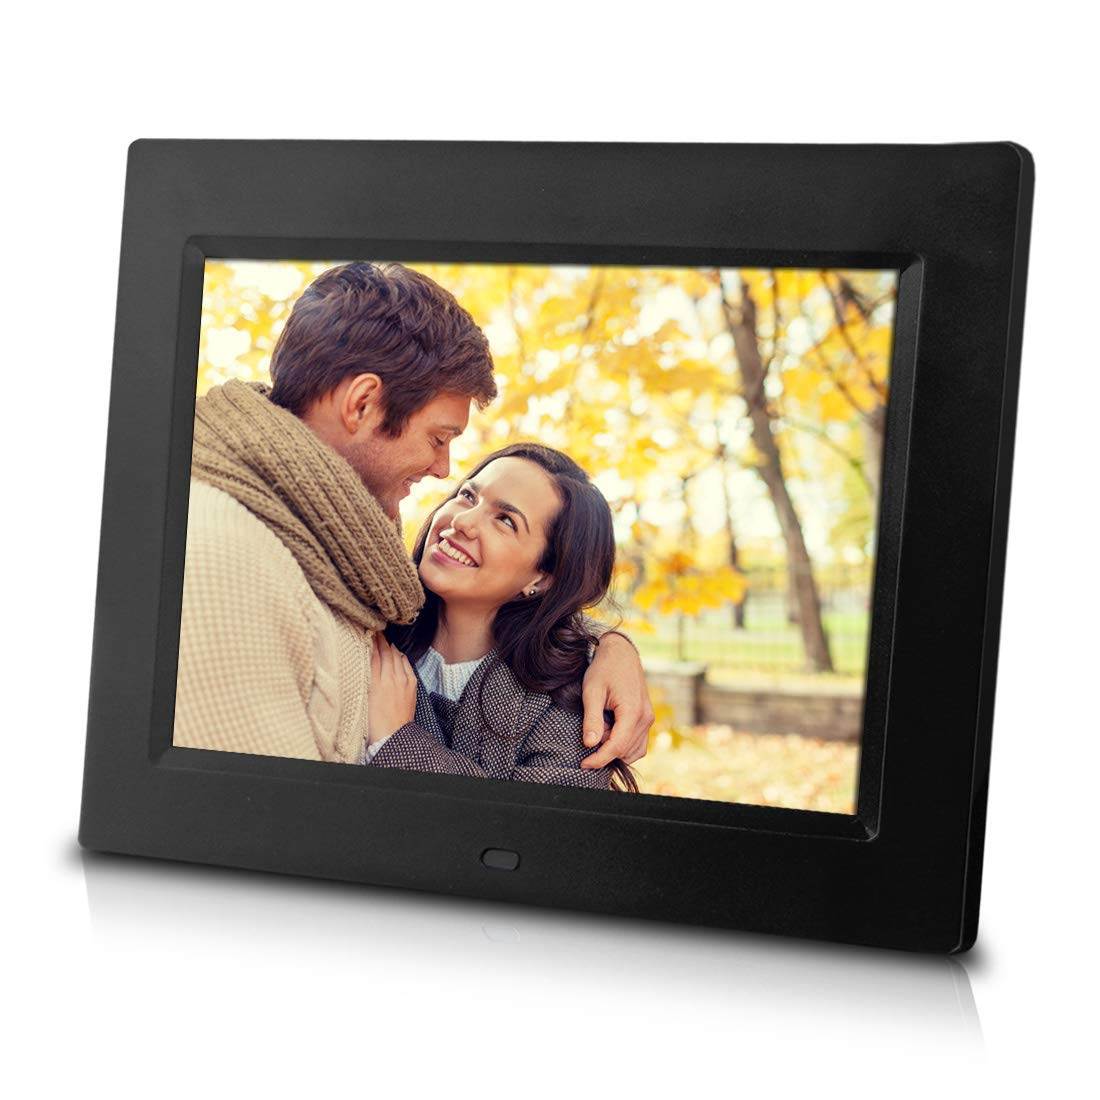 10 inch Digital Photo Frame w/Remote Control, 16:9 Wide Screen, Plug and Play